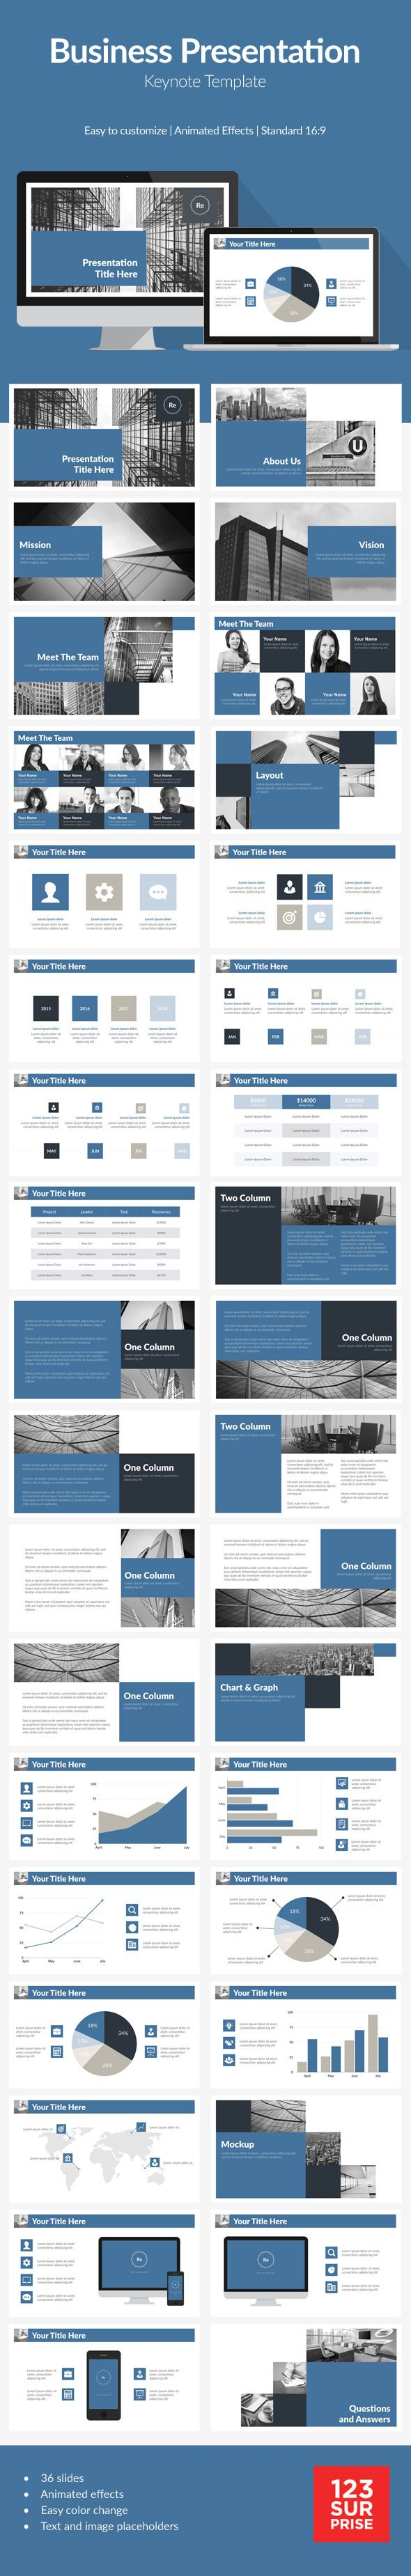 200 best powerpoint images on pinterest presentation design page blue corporate business presentation template design slides buy now http toneelgroepblik Gallery